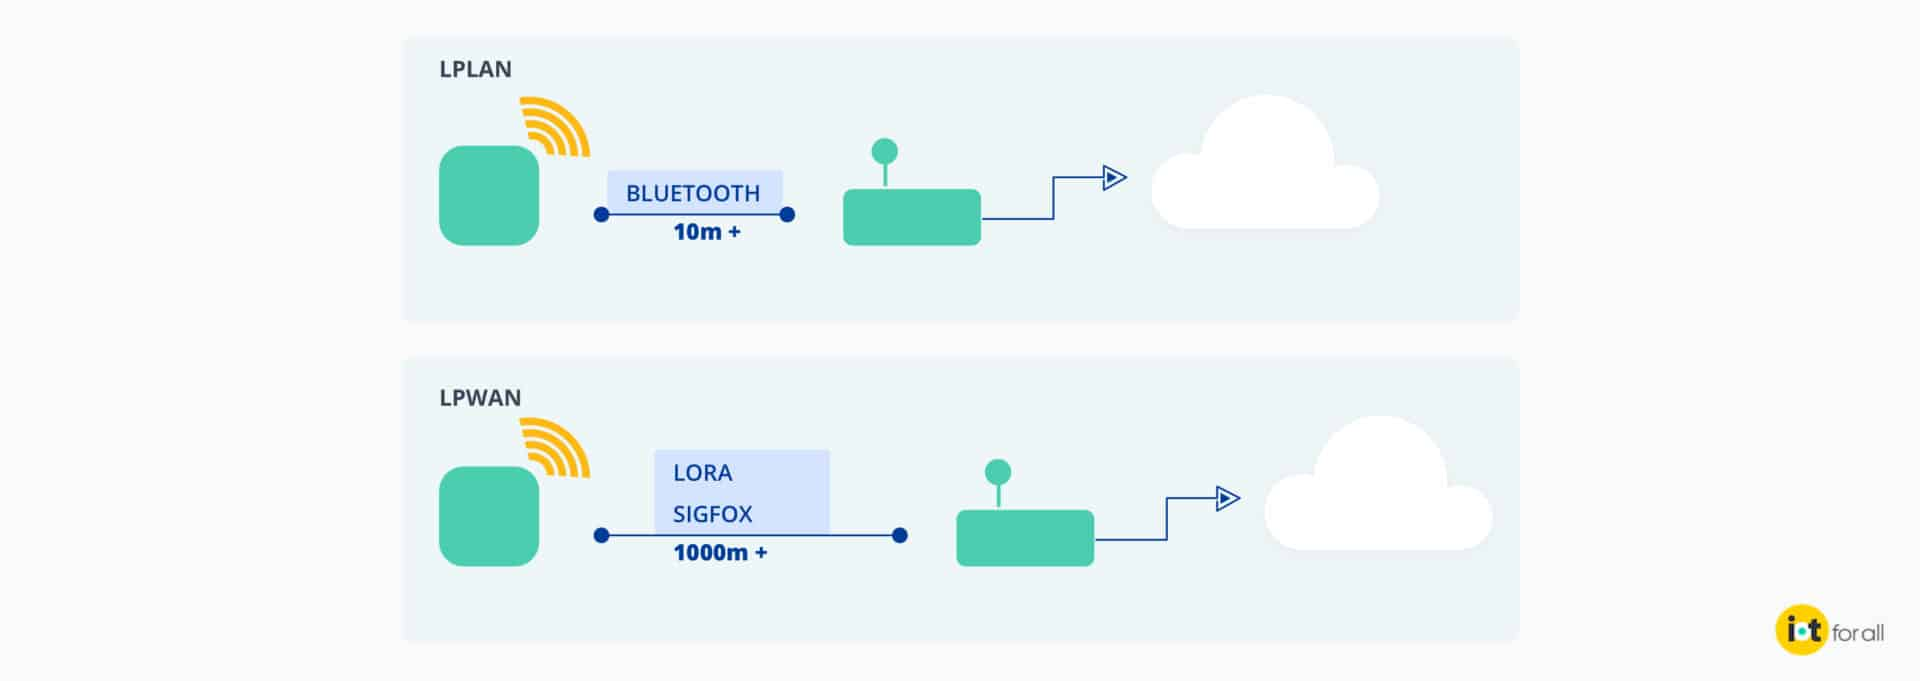 Diagram demonstrating range differences between bluetooth LPLAN and LPWANs like LoRa and Sigfox